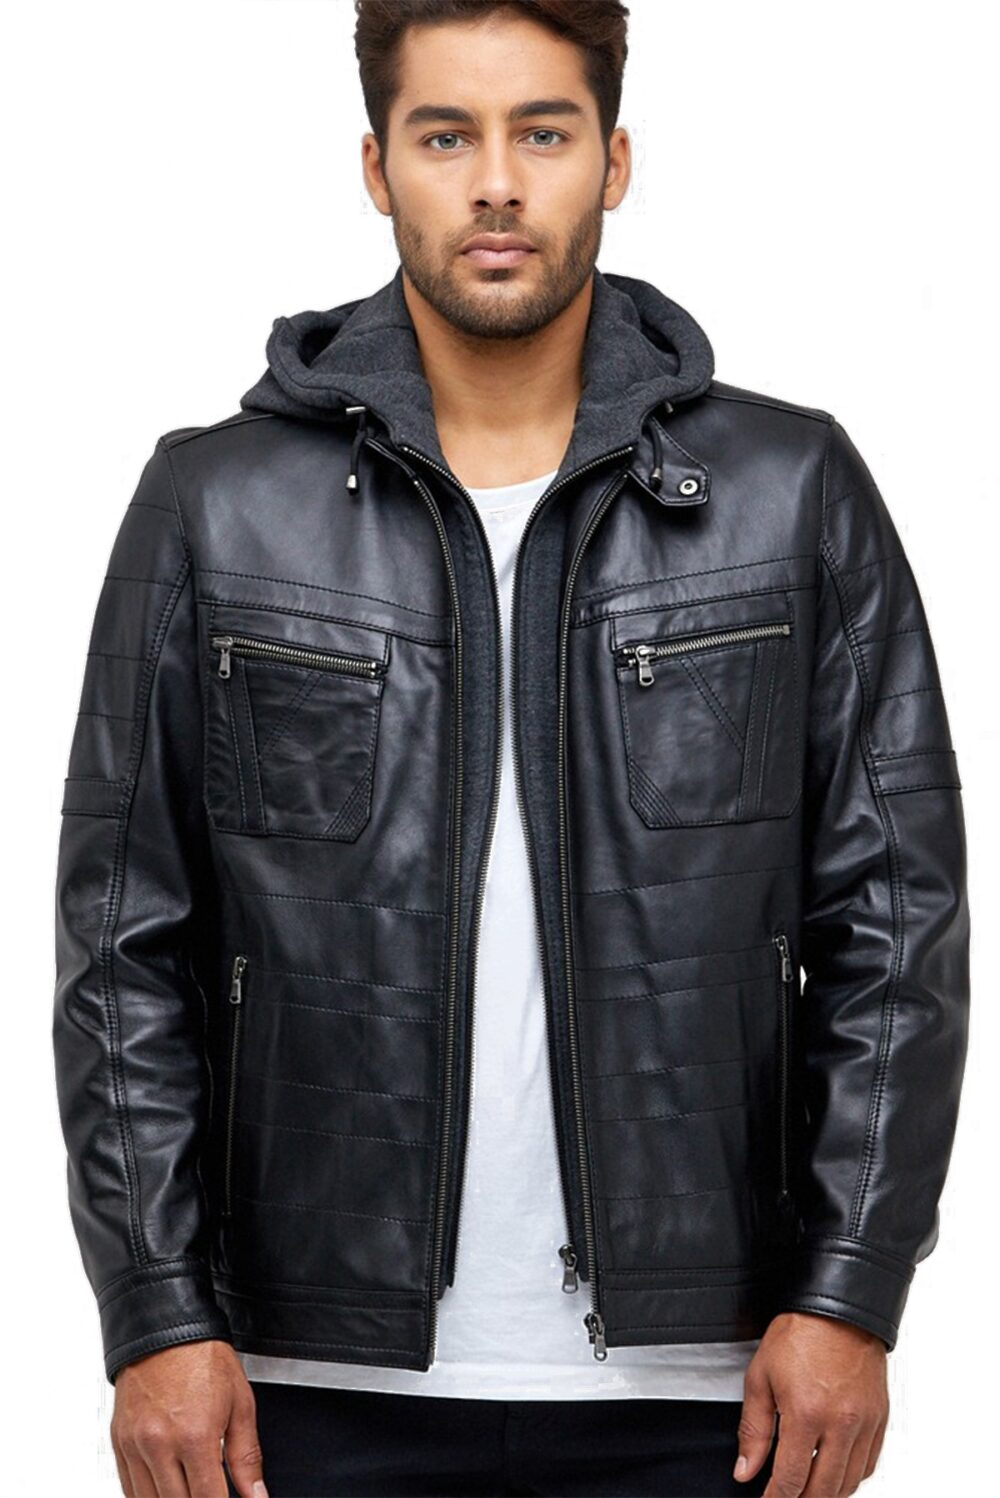 real leather jacket mens